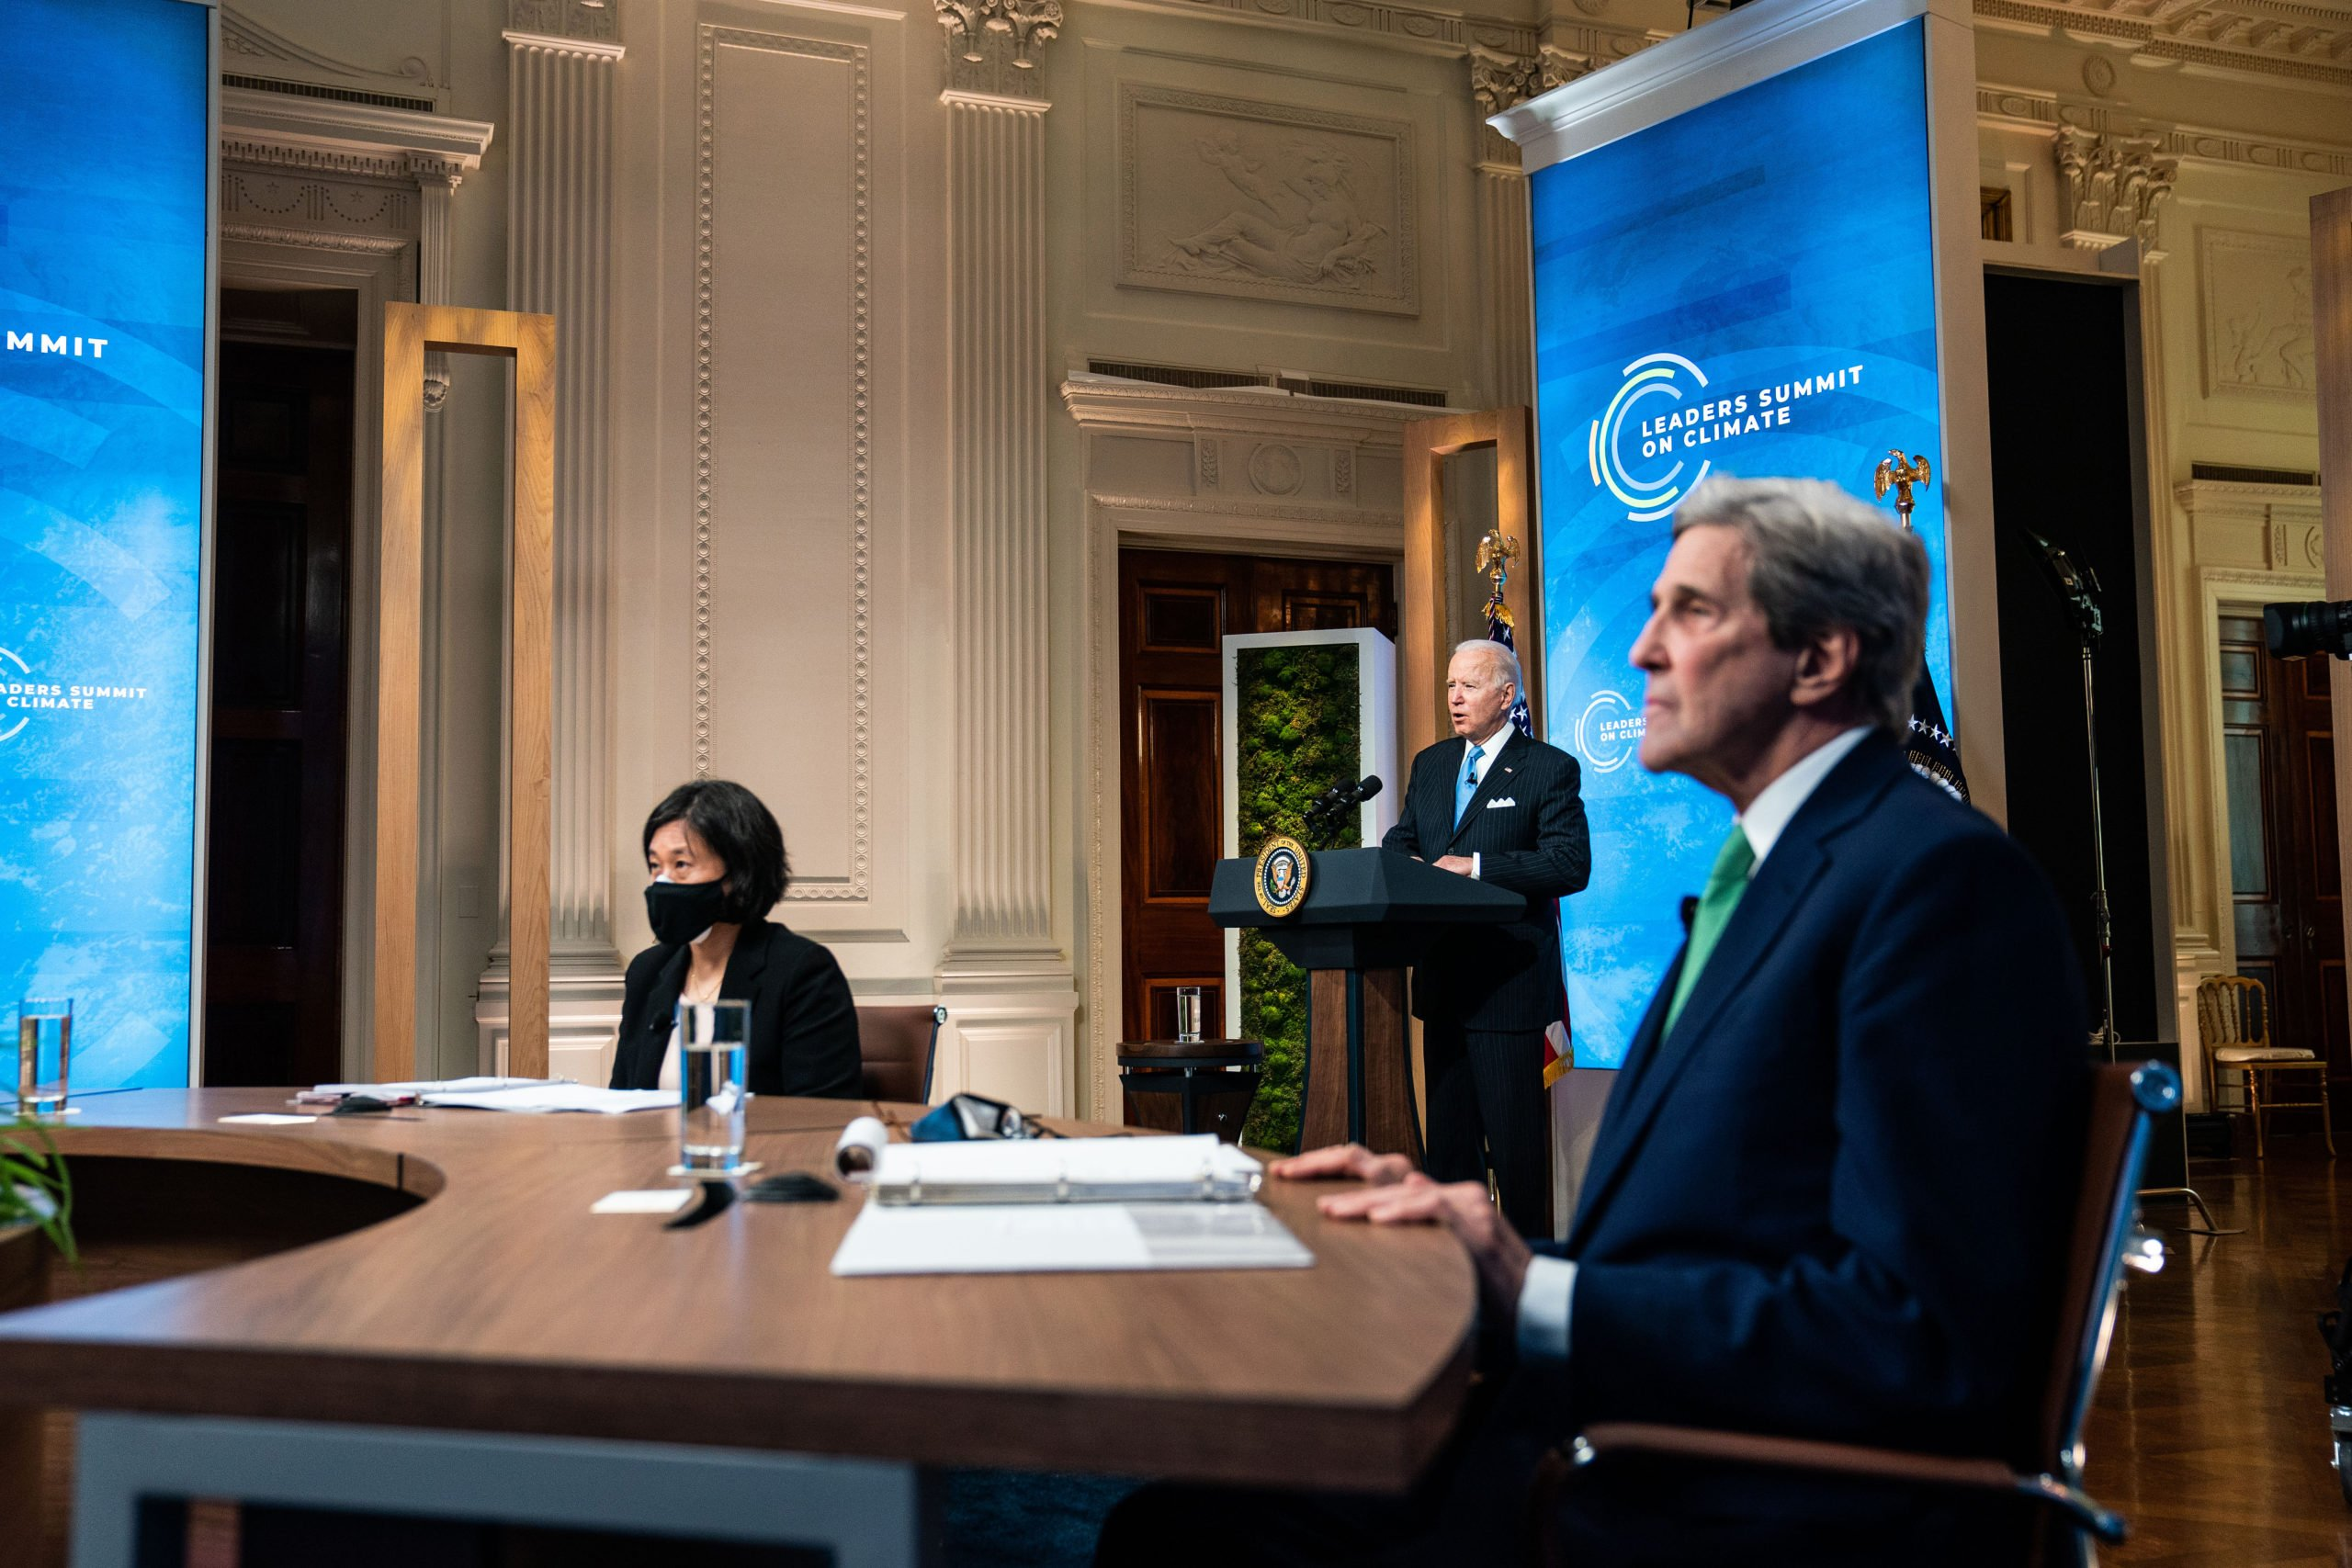 President Joe Biden delivers remarks as U.S. Trade Representative Katherine Tai and Special Presidential Envoy for Climate John Kerry listen at the White House on April 23. (Anna Moneymaker/Pool/Getty Images)